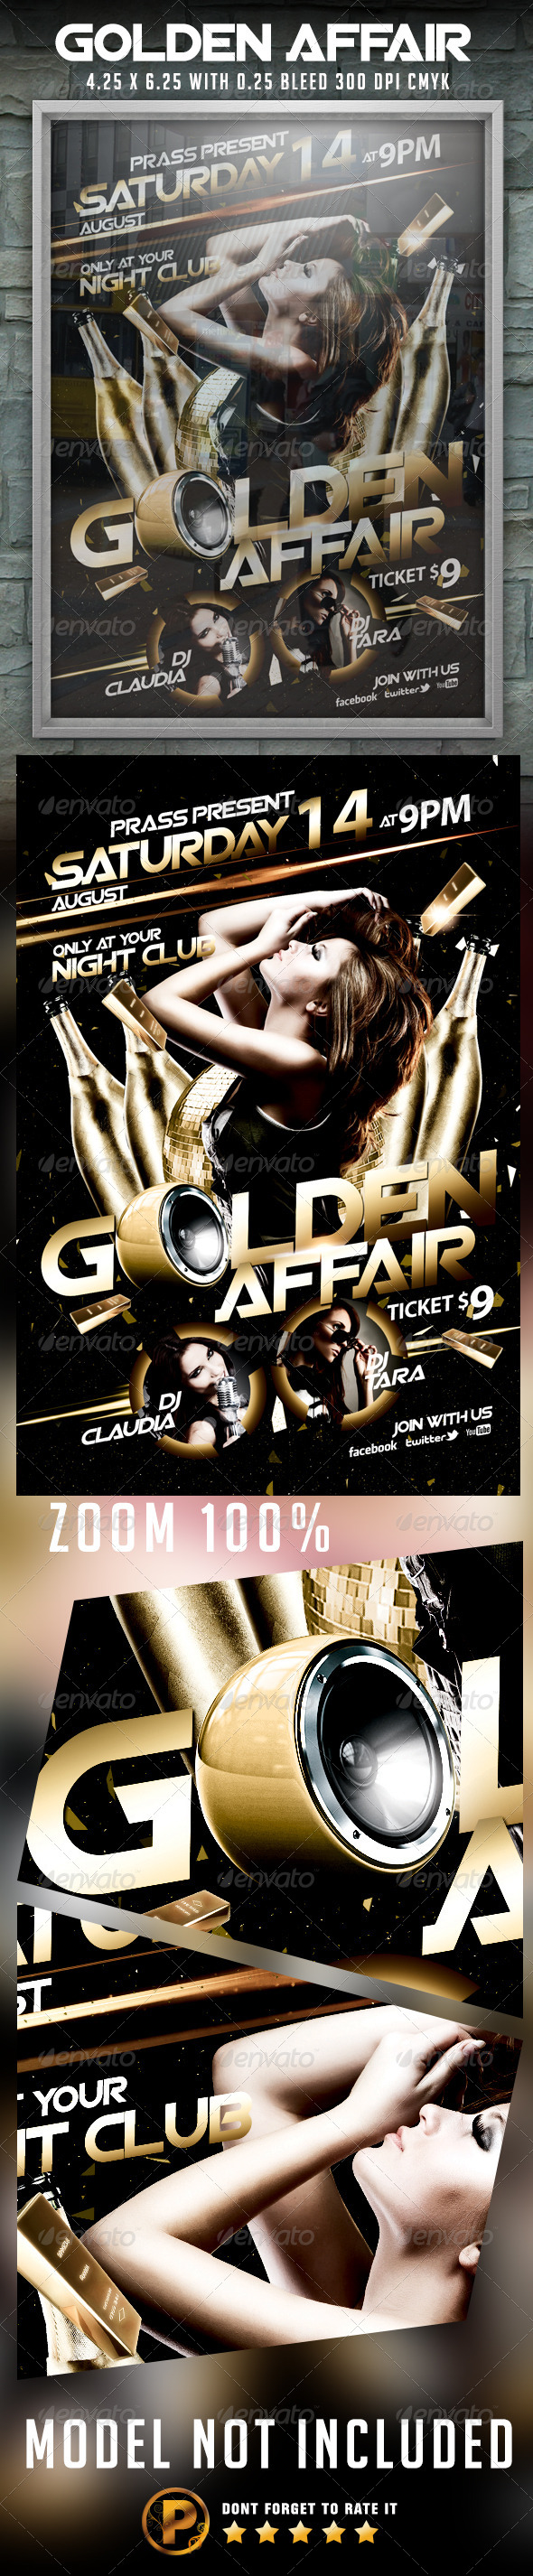 Golden Affair Flyer Template - Clubs & Parties Events